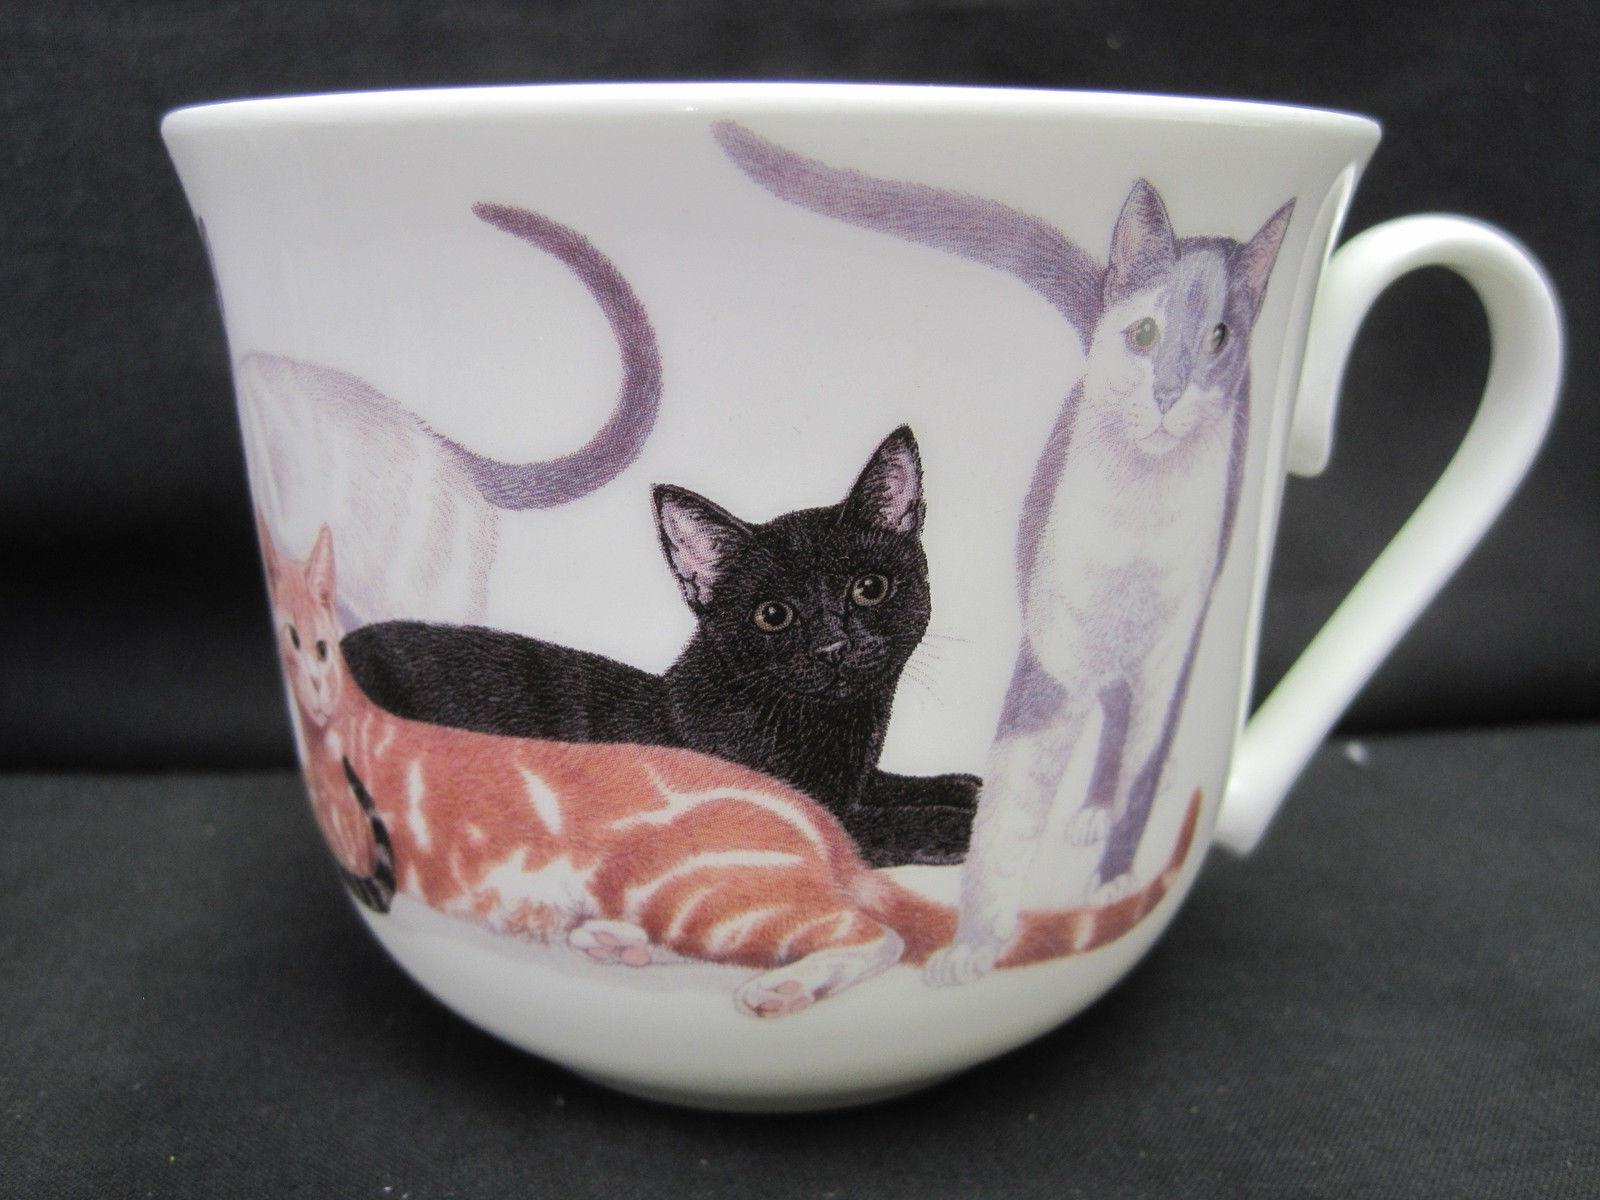 CATS CHINA CUP SAUCER, ROY MADE IN ENGLAND